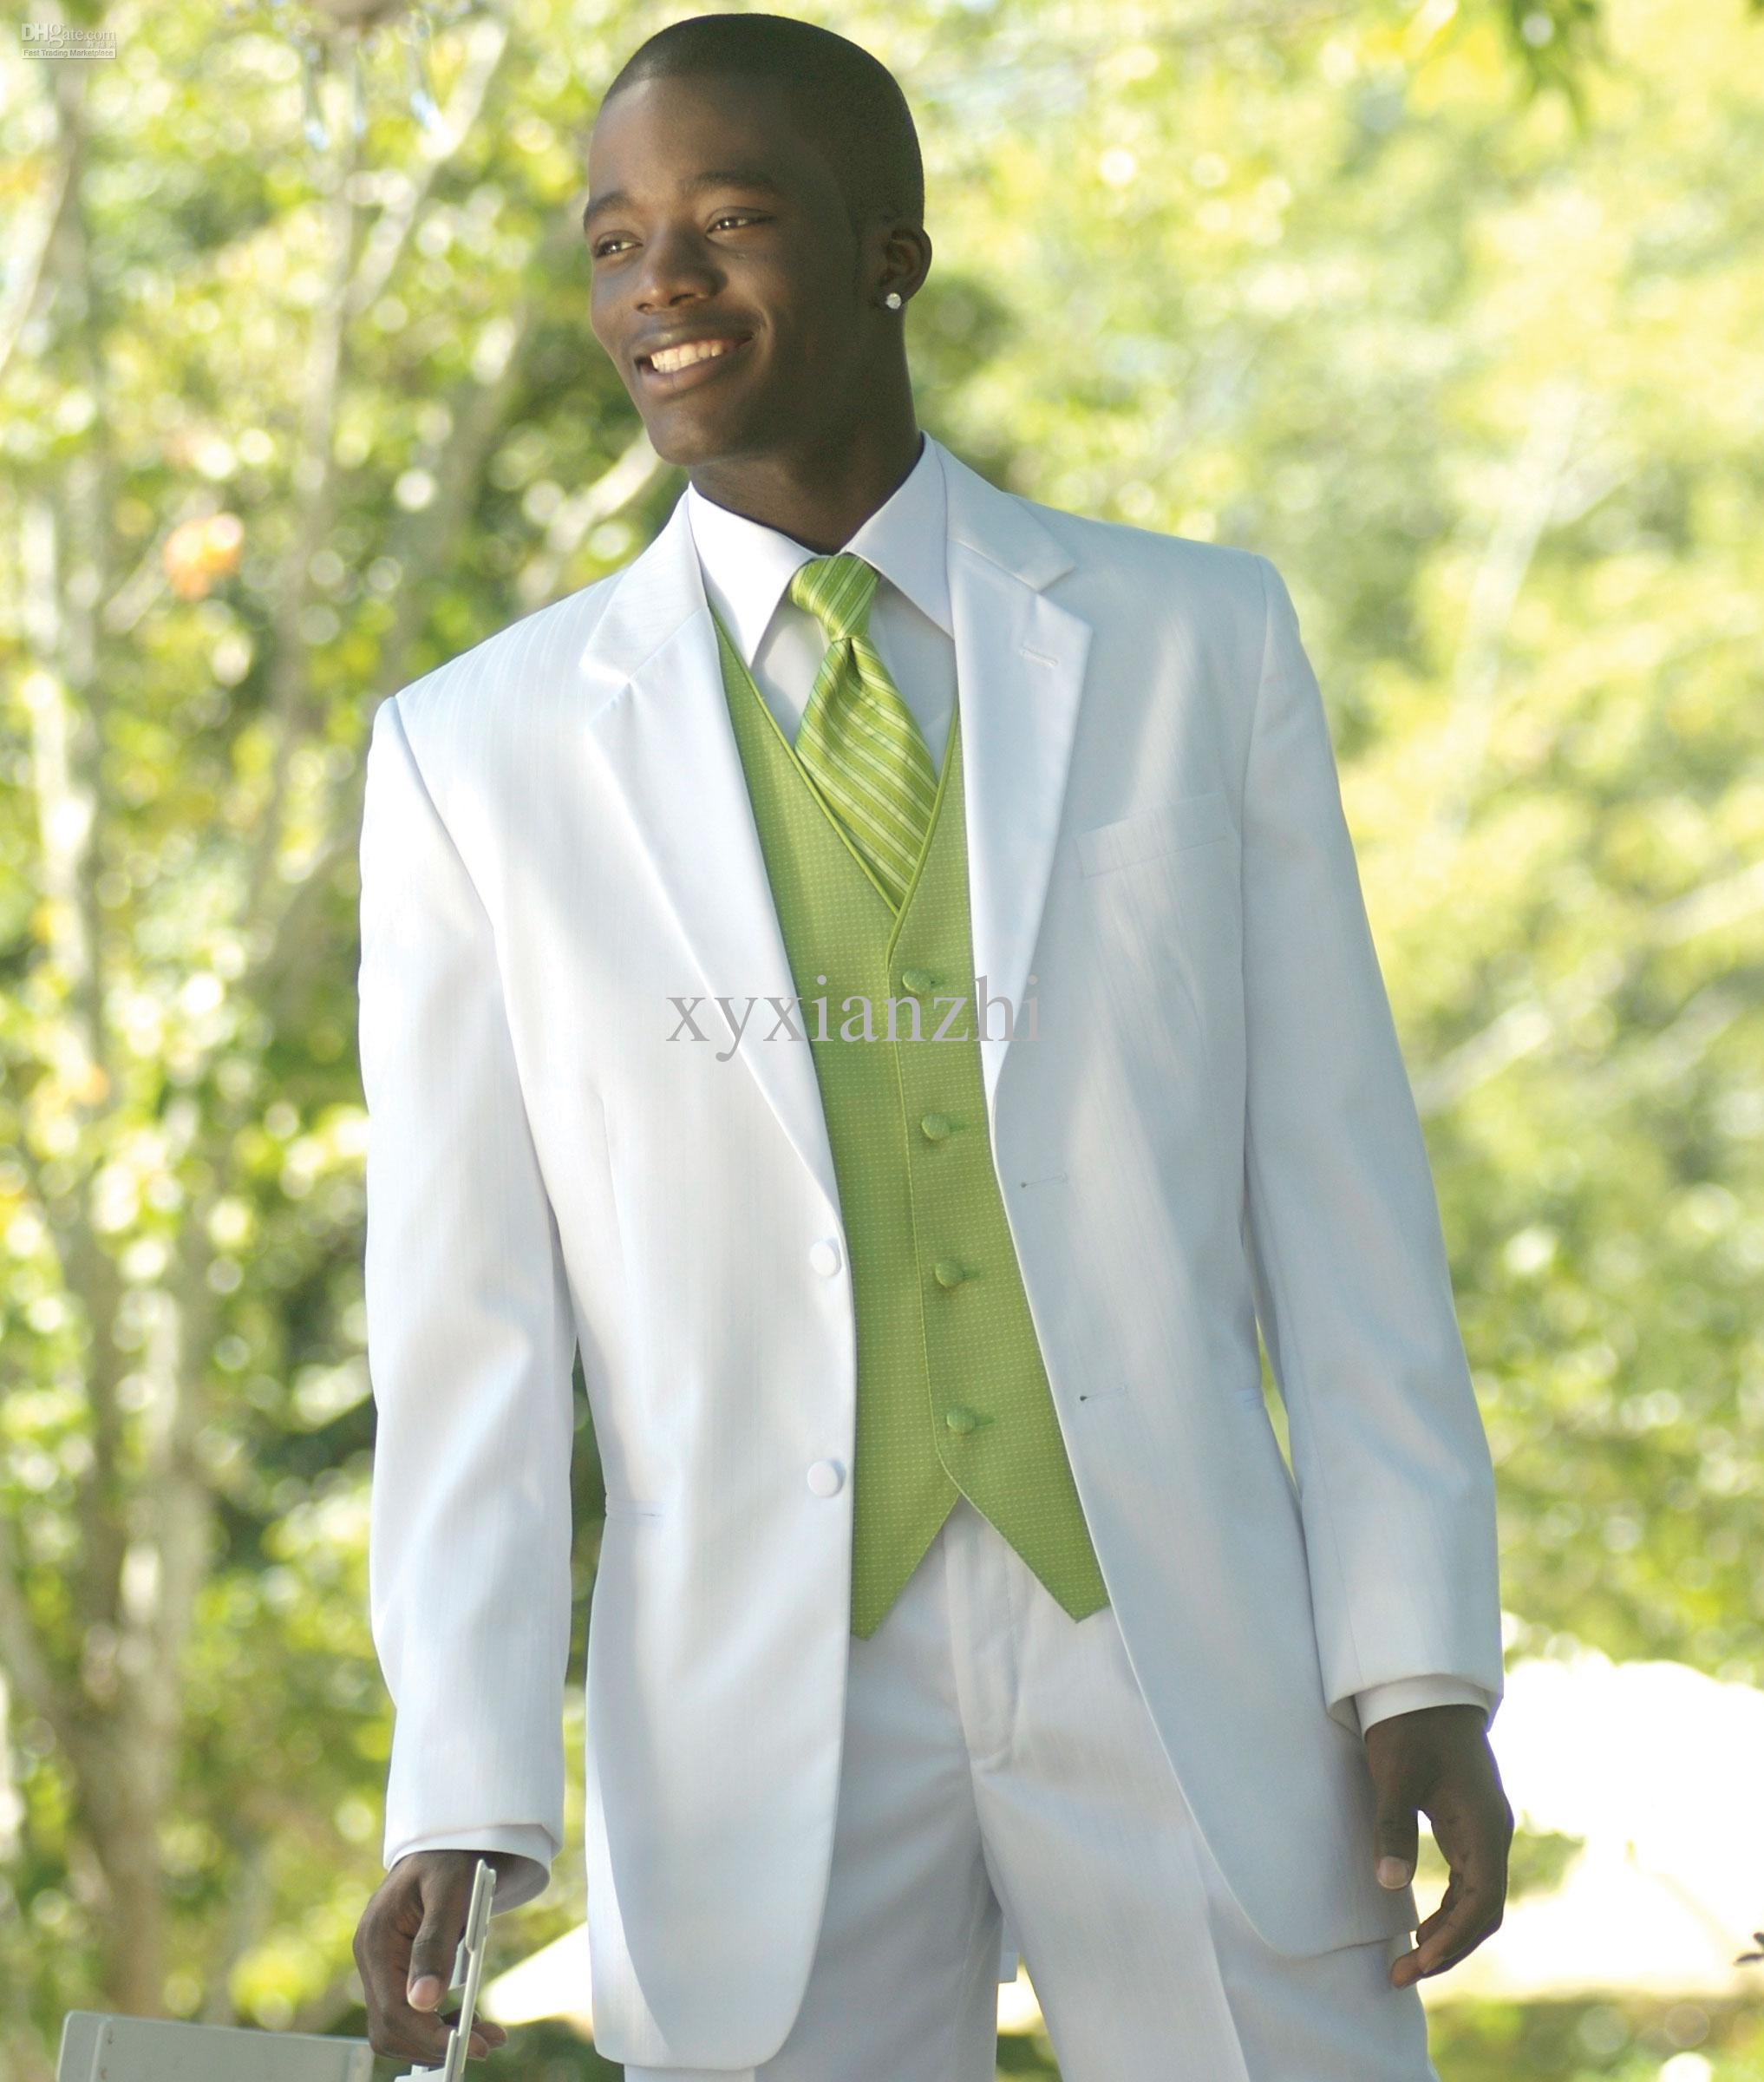 Mens Suits Formal Wear Groom Wedding Tuxedo For Men Suit White Custom Made Fashion Dress Modern Online With 13715 Set